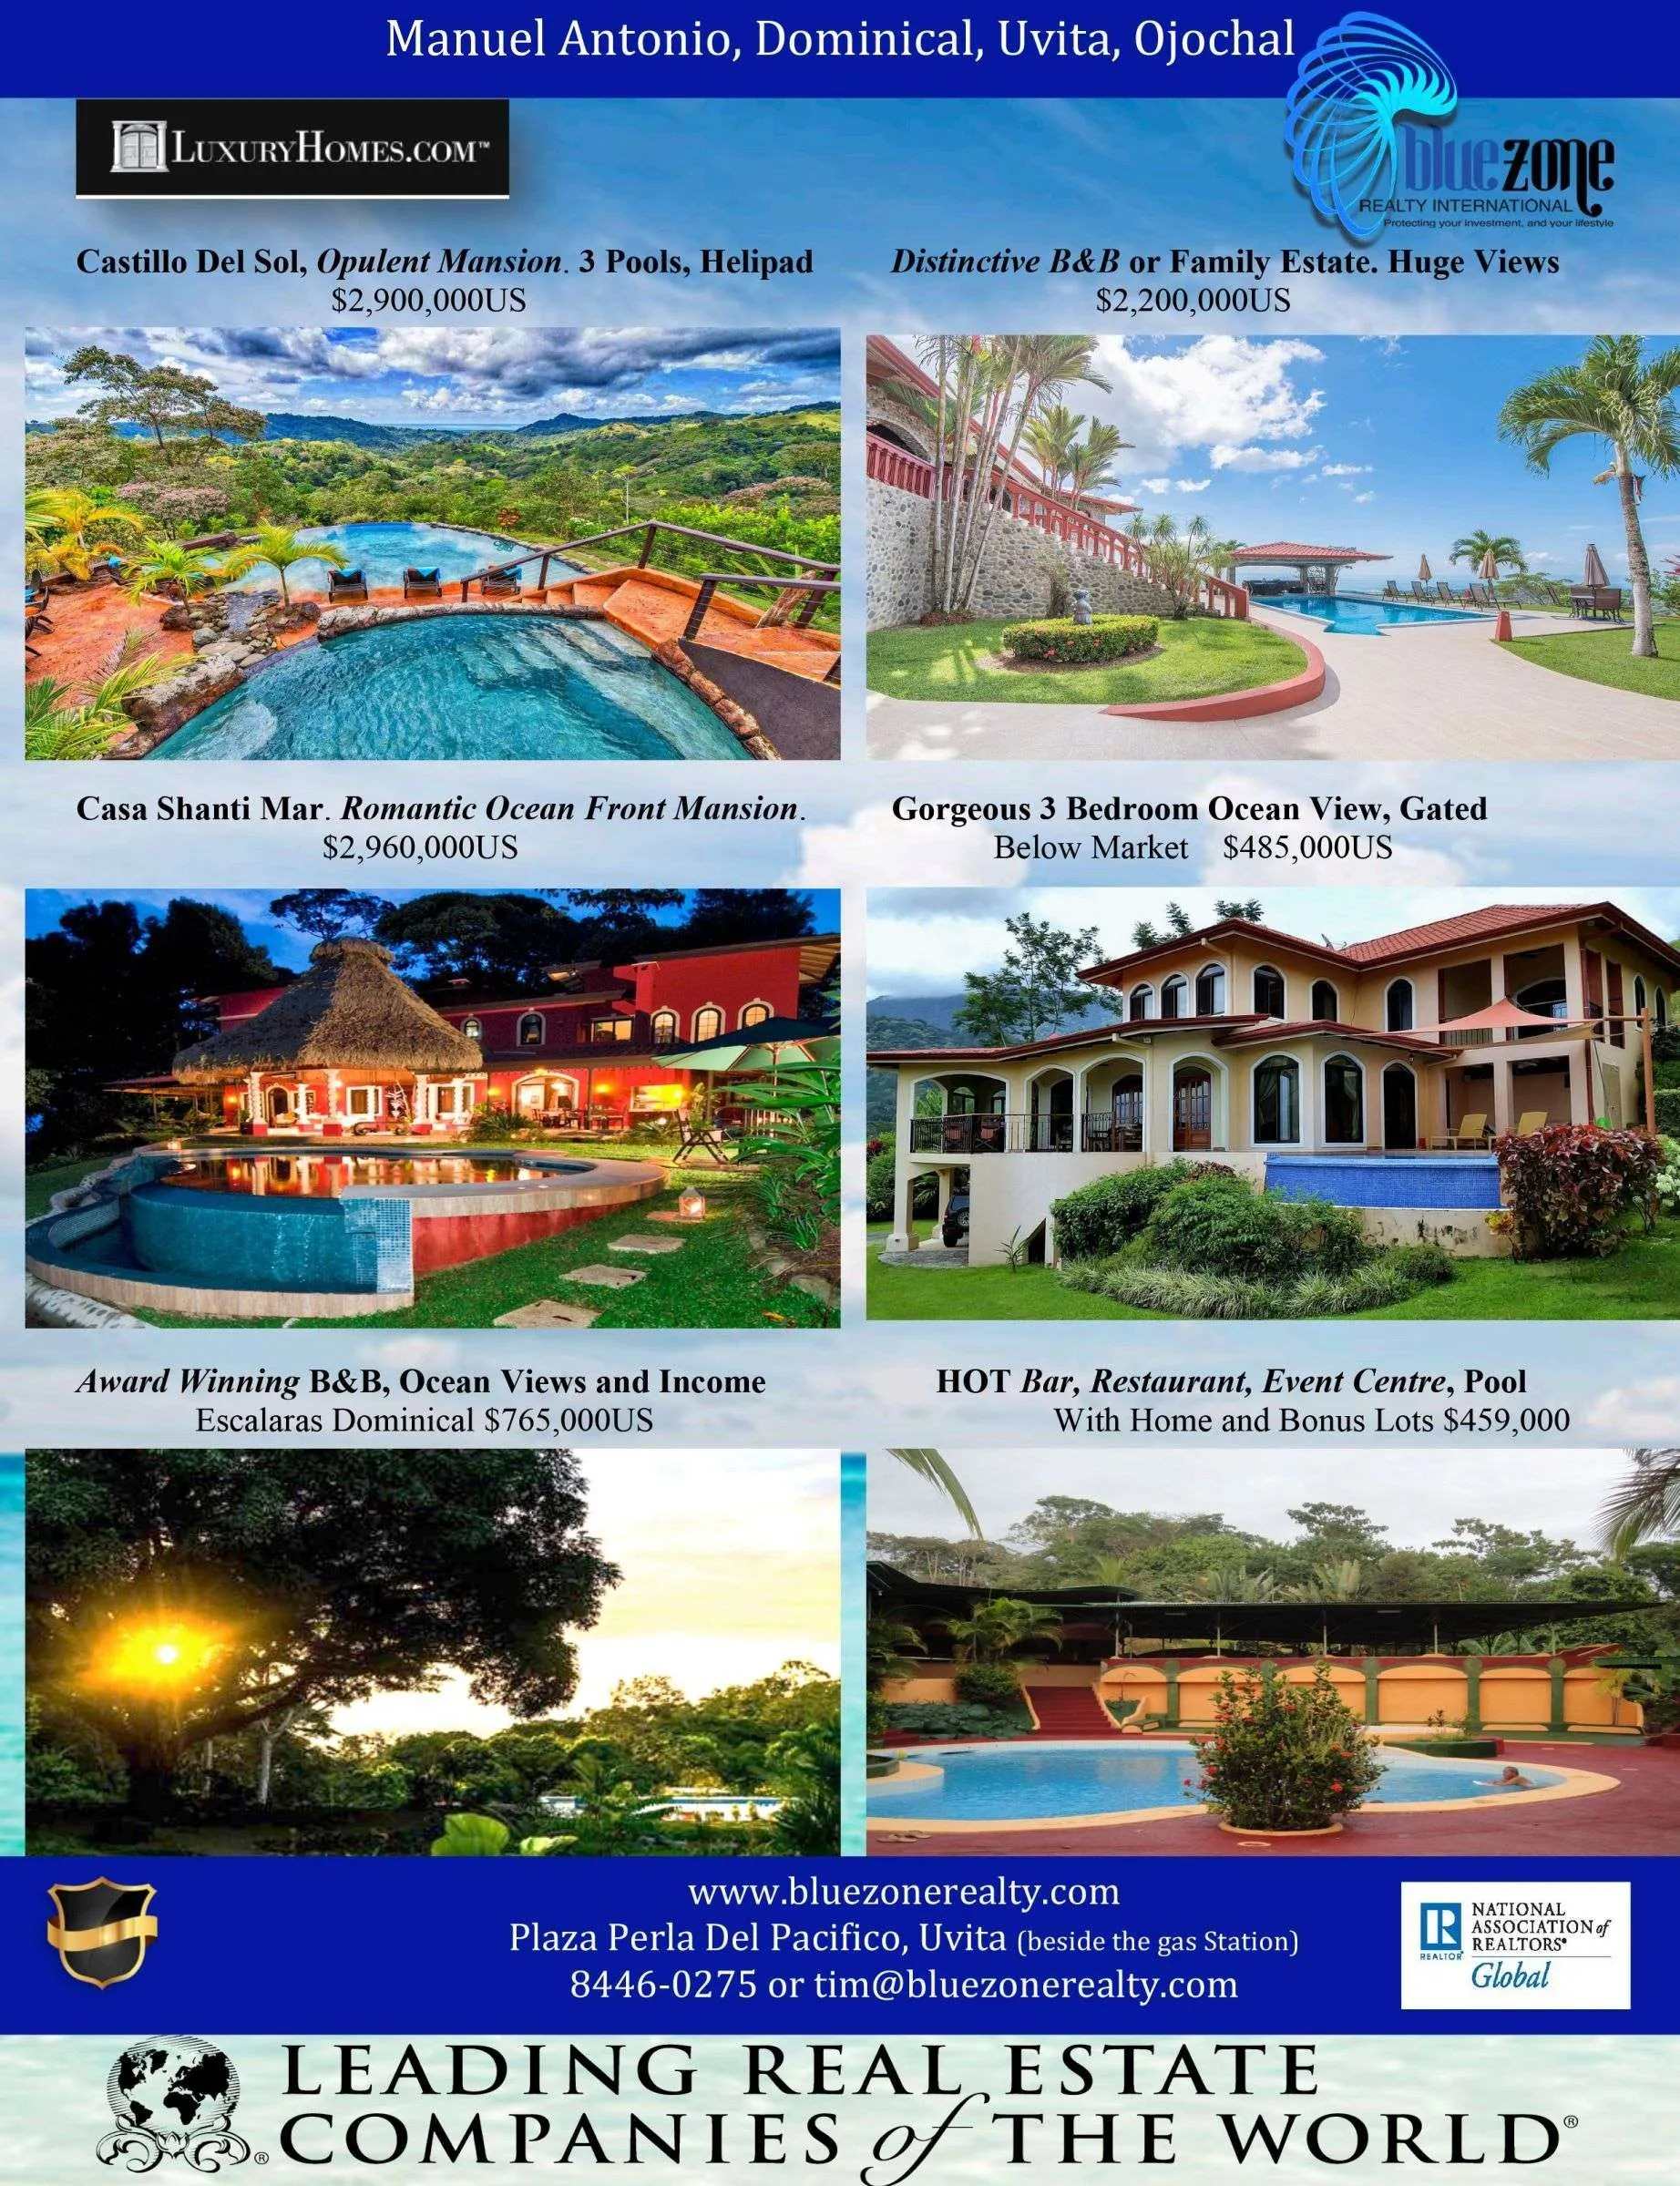 Blue Zone Realty International, Costa Rica, real estate South Pacific Costa Rica